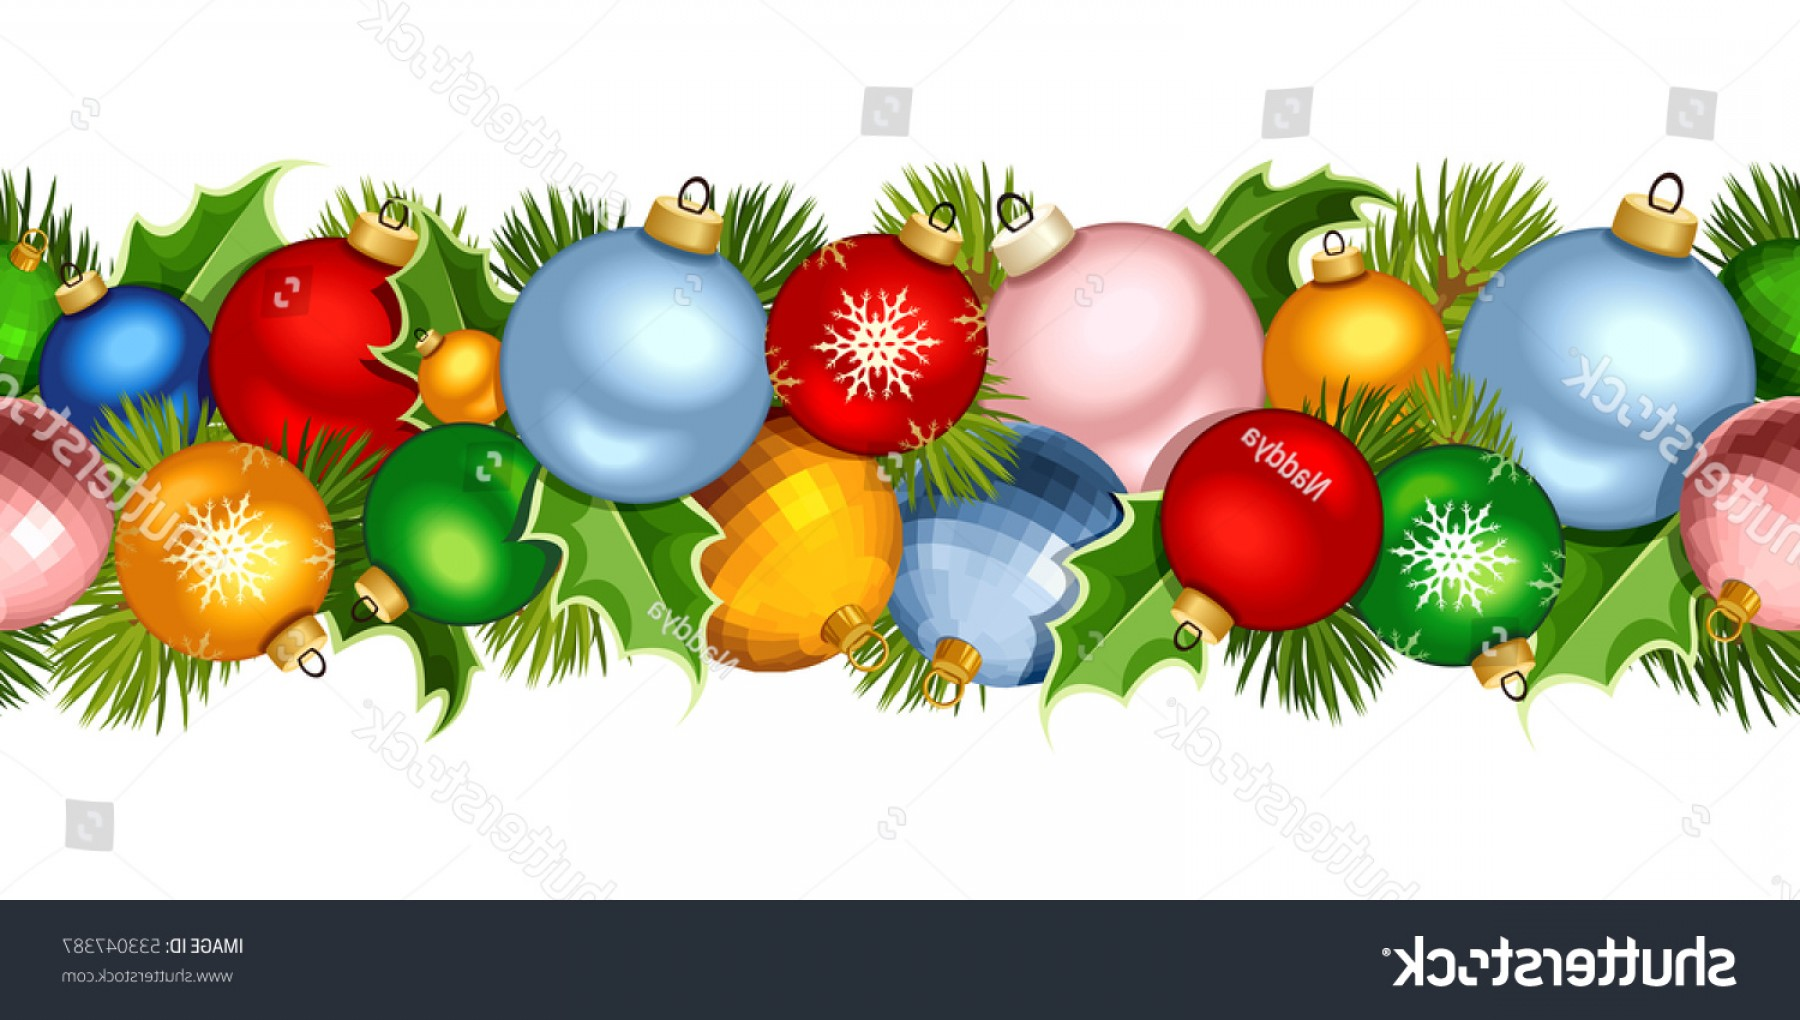 Christmas Horizontal Vector: Vector Christmas Horizontal Seamless Garland Colorful